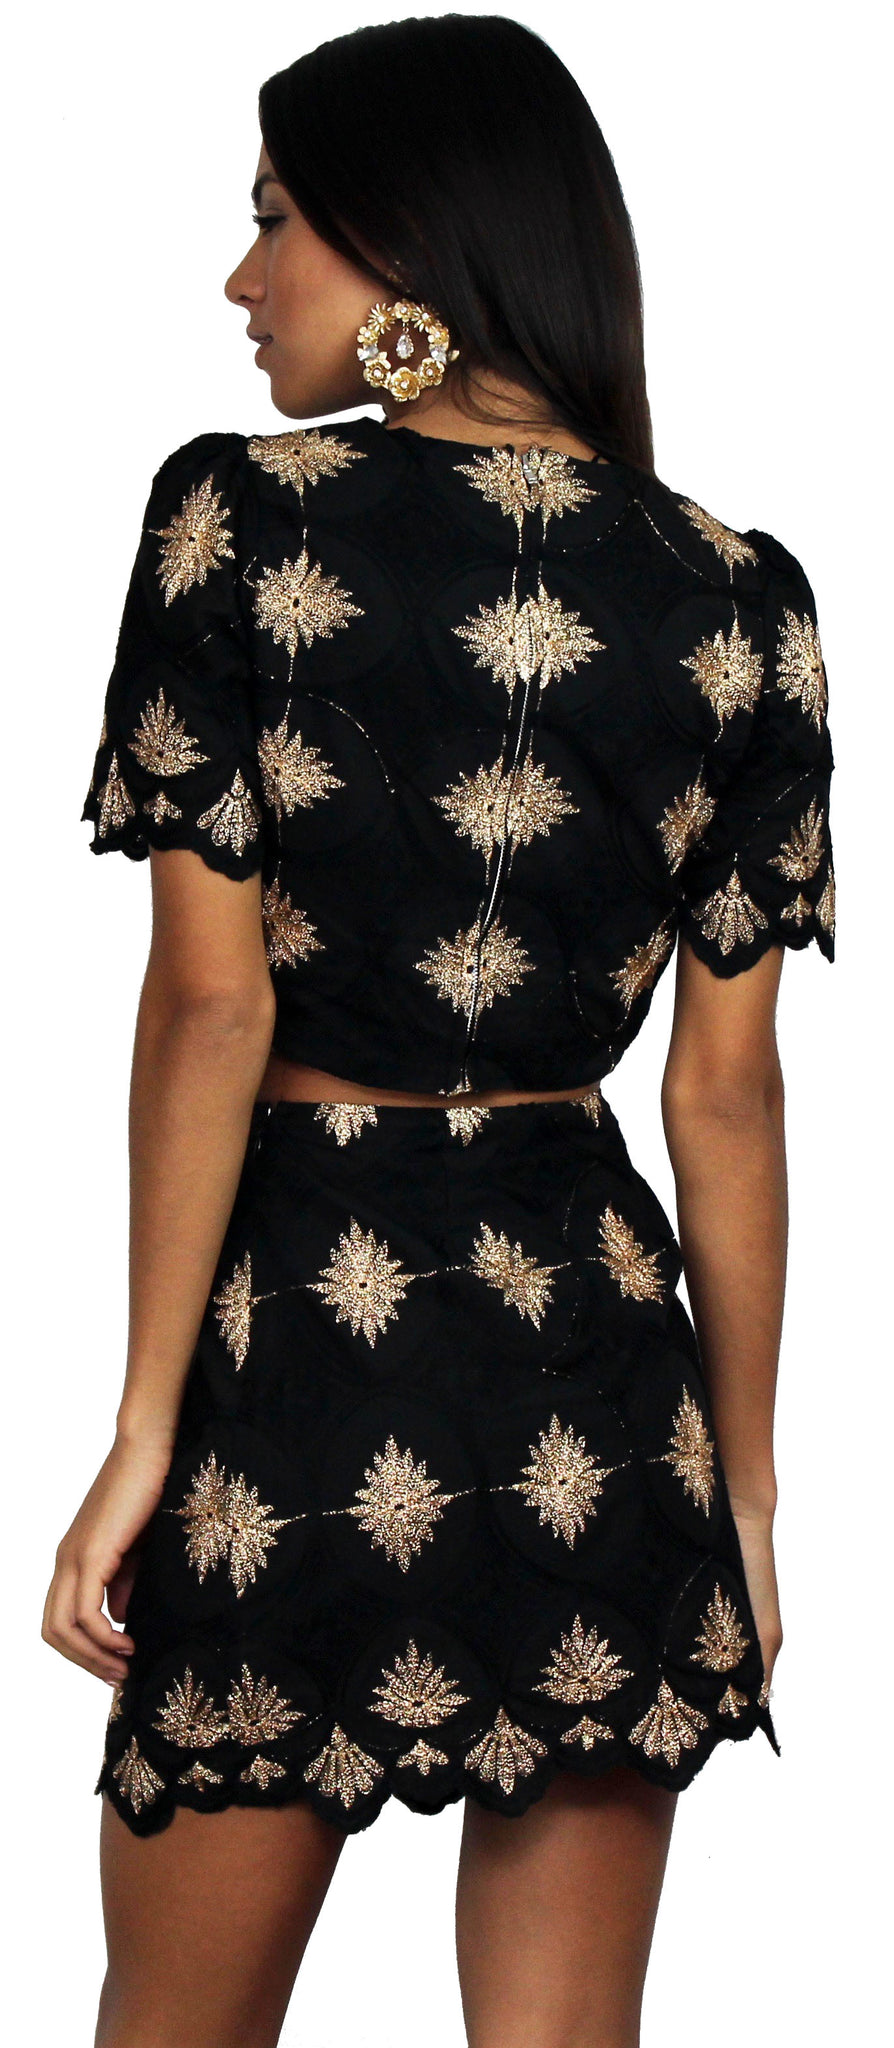 Art of Poise Black Embroidered Two-Piece Set